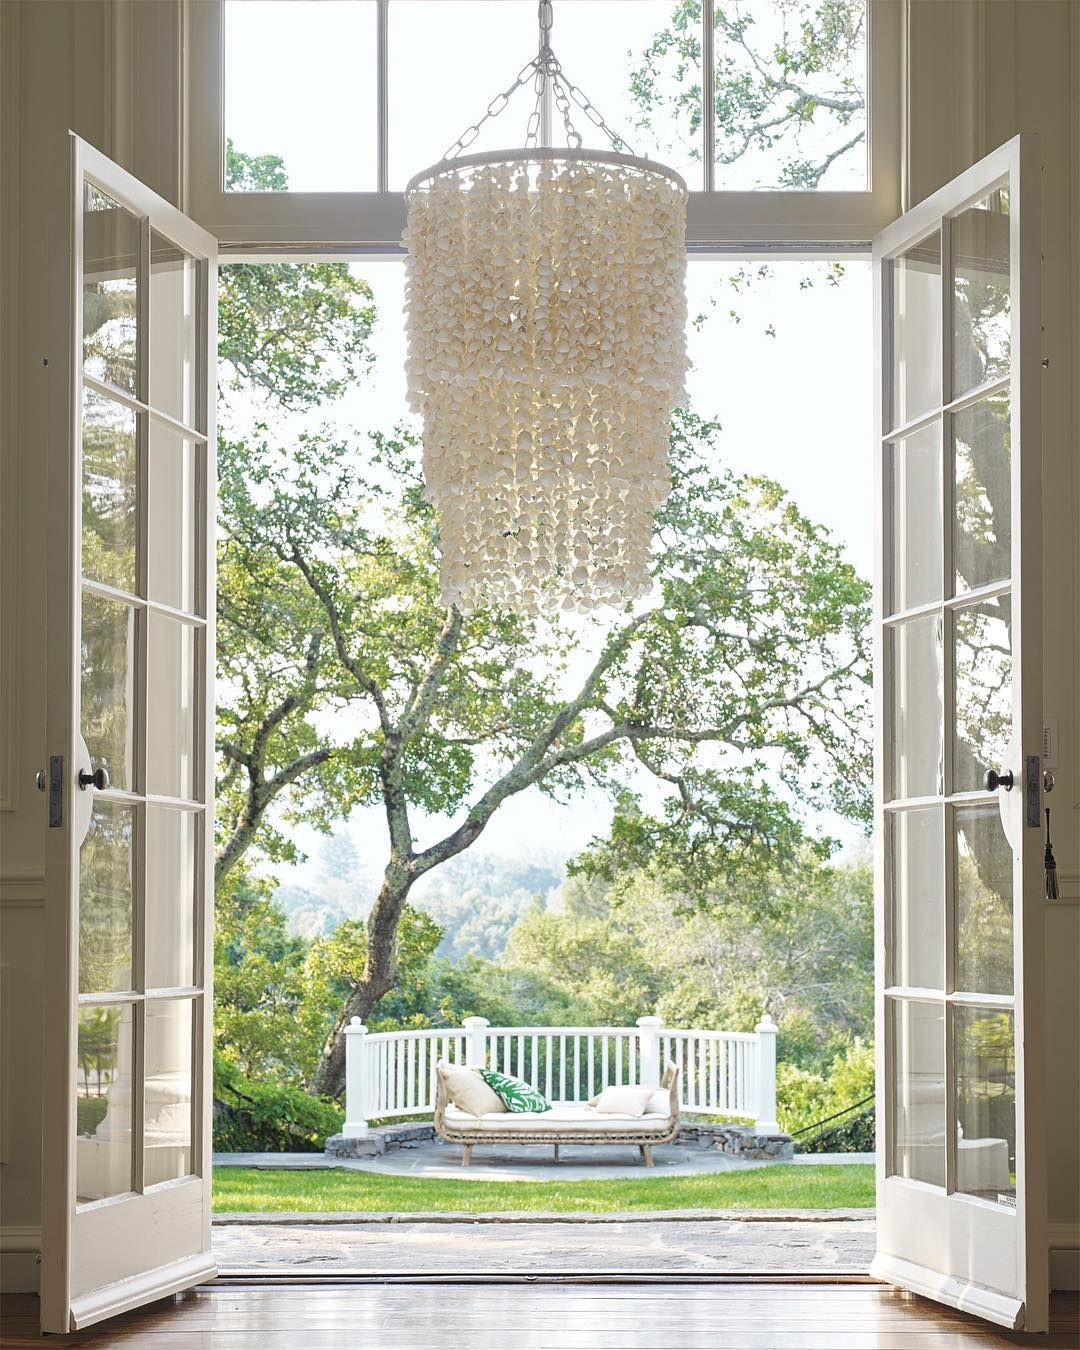 A statement piece this stunning deserves a grand entrance